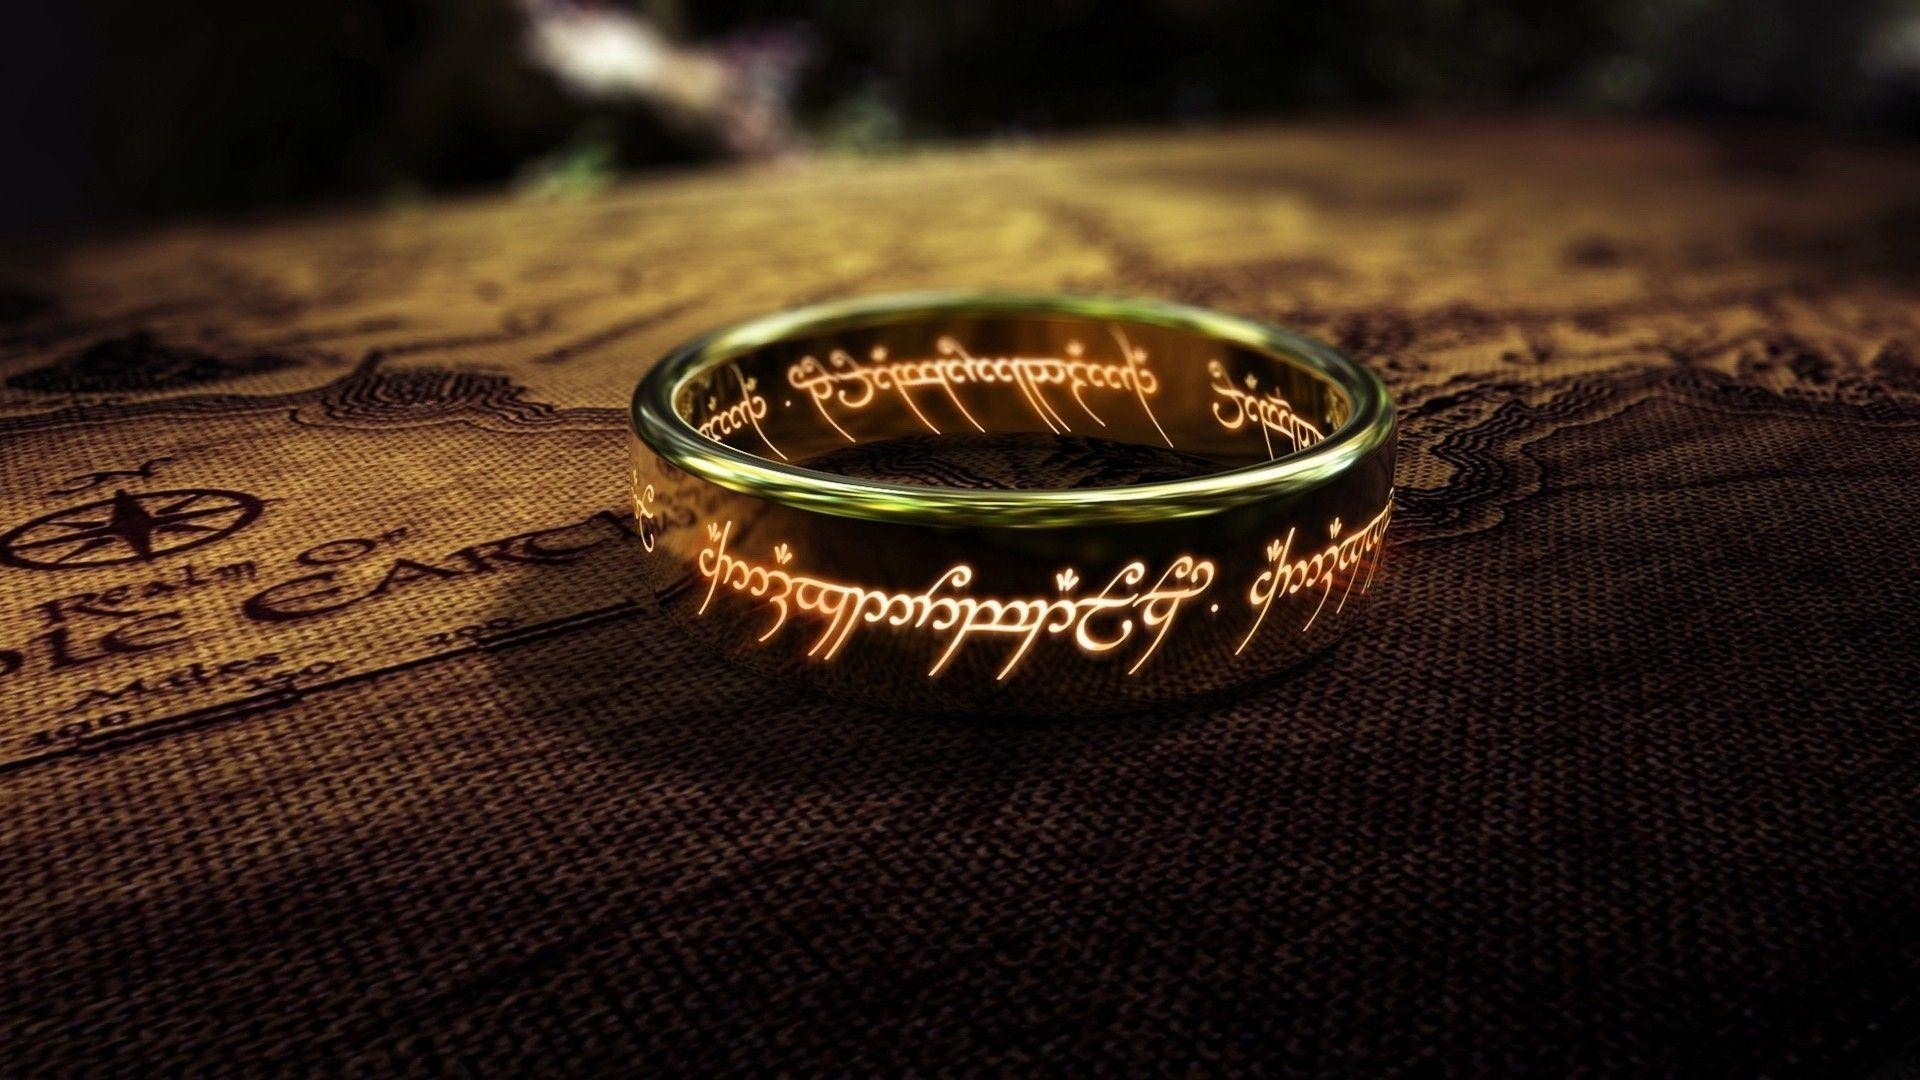 1920x1080 One Ring - The Lord of The Rings Wallpaper #